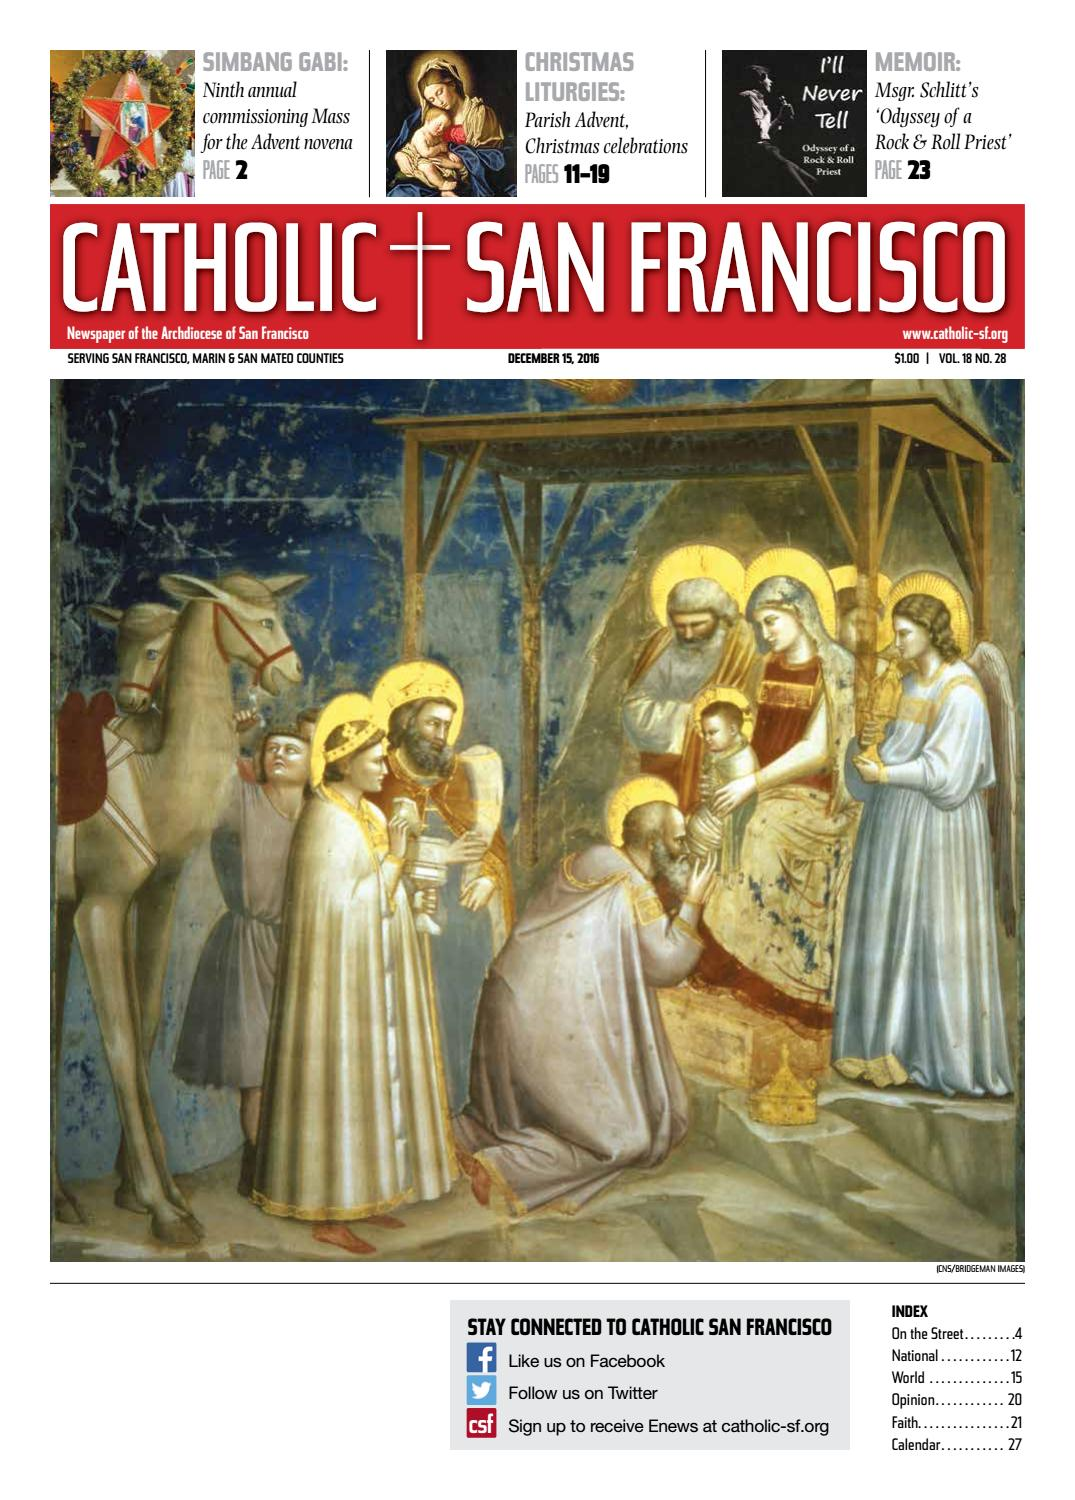 St Francis Assisi Church In Castle Rock Book Knights Of Columbus Give As Christmas Gift In 2020 December 15, 2016 by Catholic San Francisco   issuu